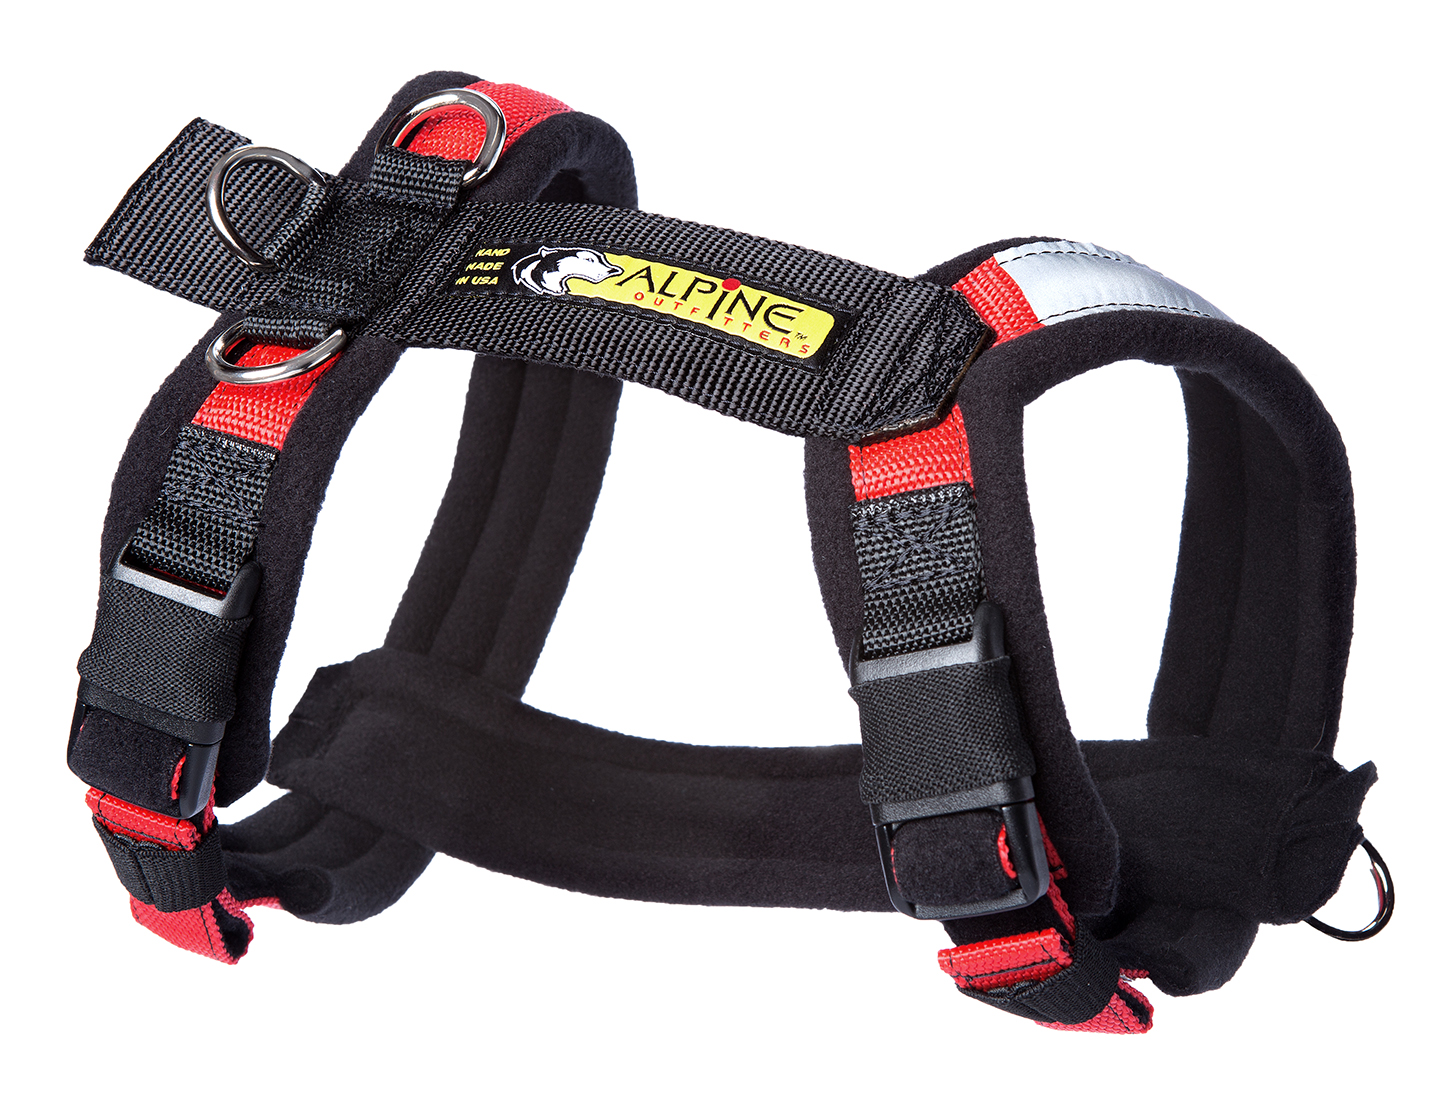 trail dog harness urban trail dog harness with side rings | fleece padded harness straps for comfort while biking yerf dog gy6 wiring harness diagram #3